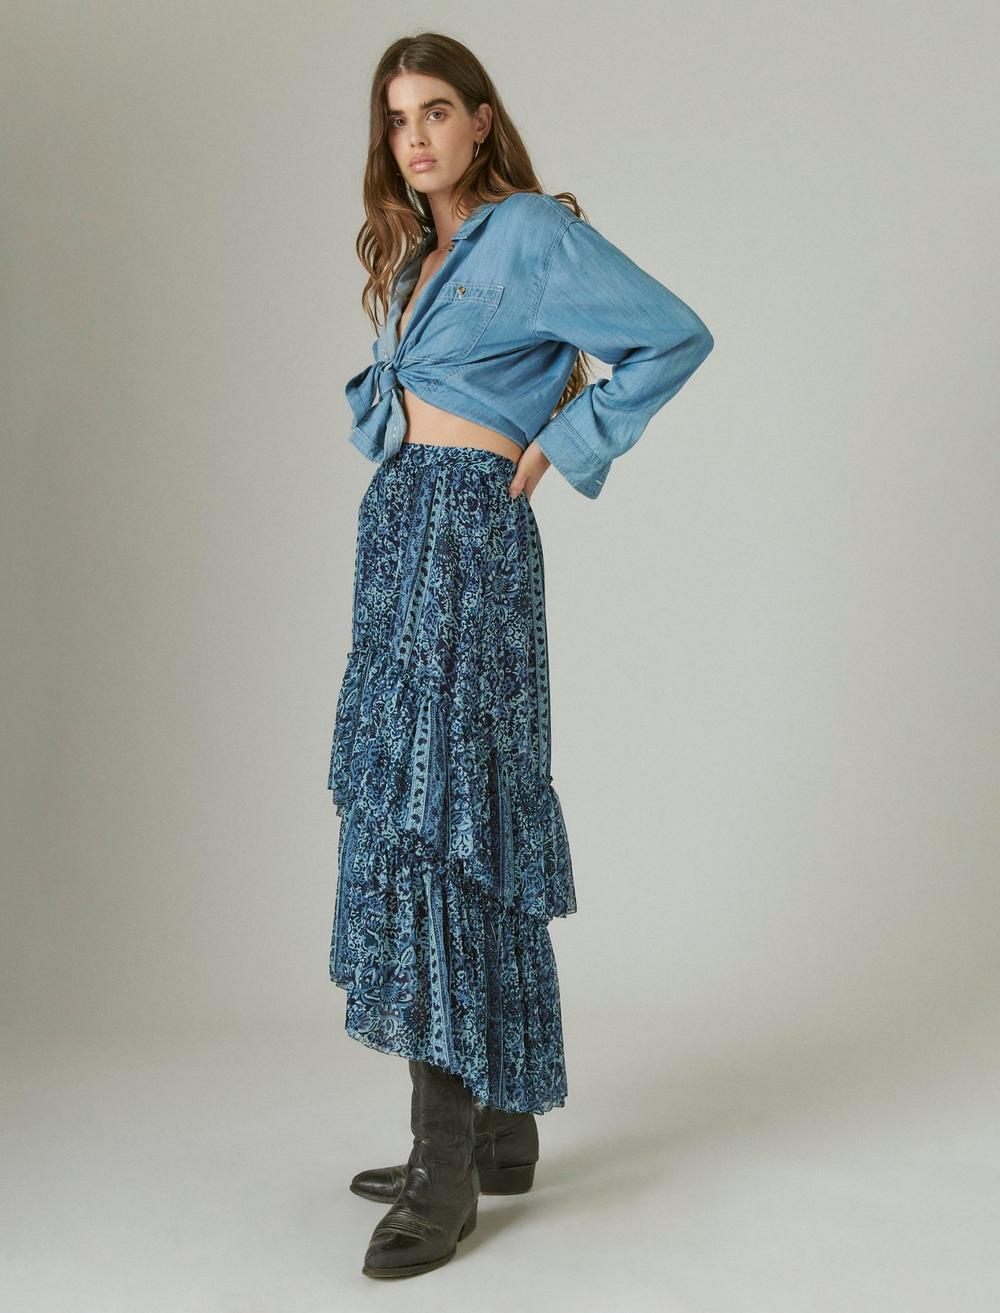 FLORAL PRINT TIERED MAXI SKIRT, image 2